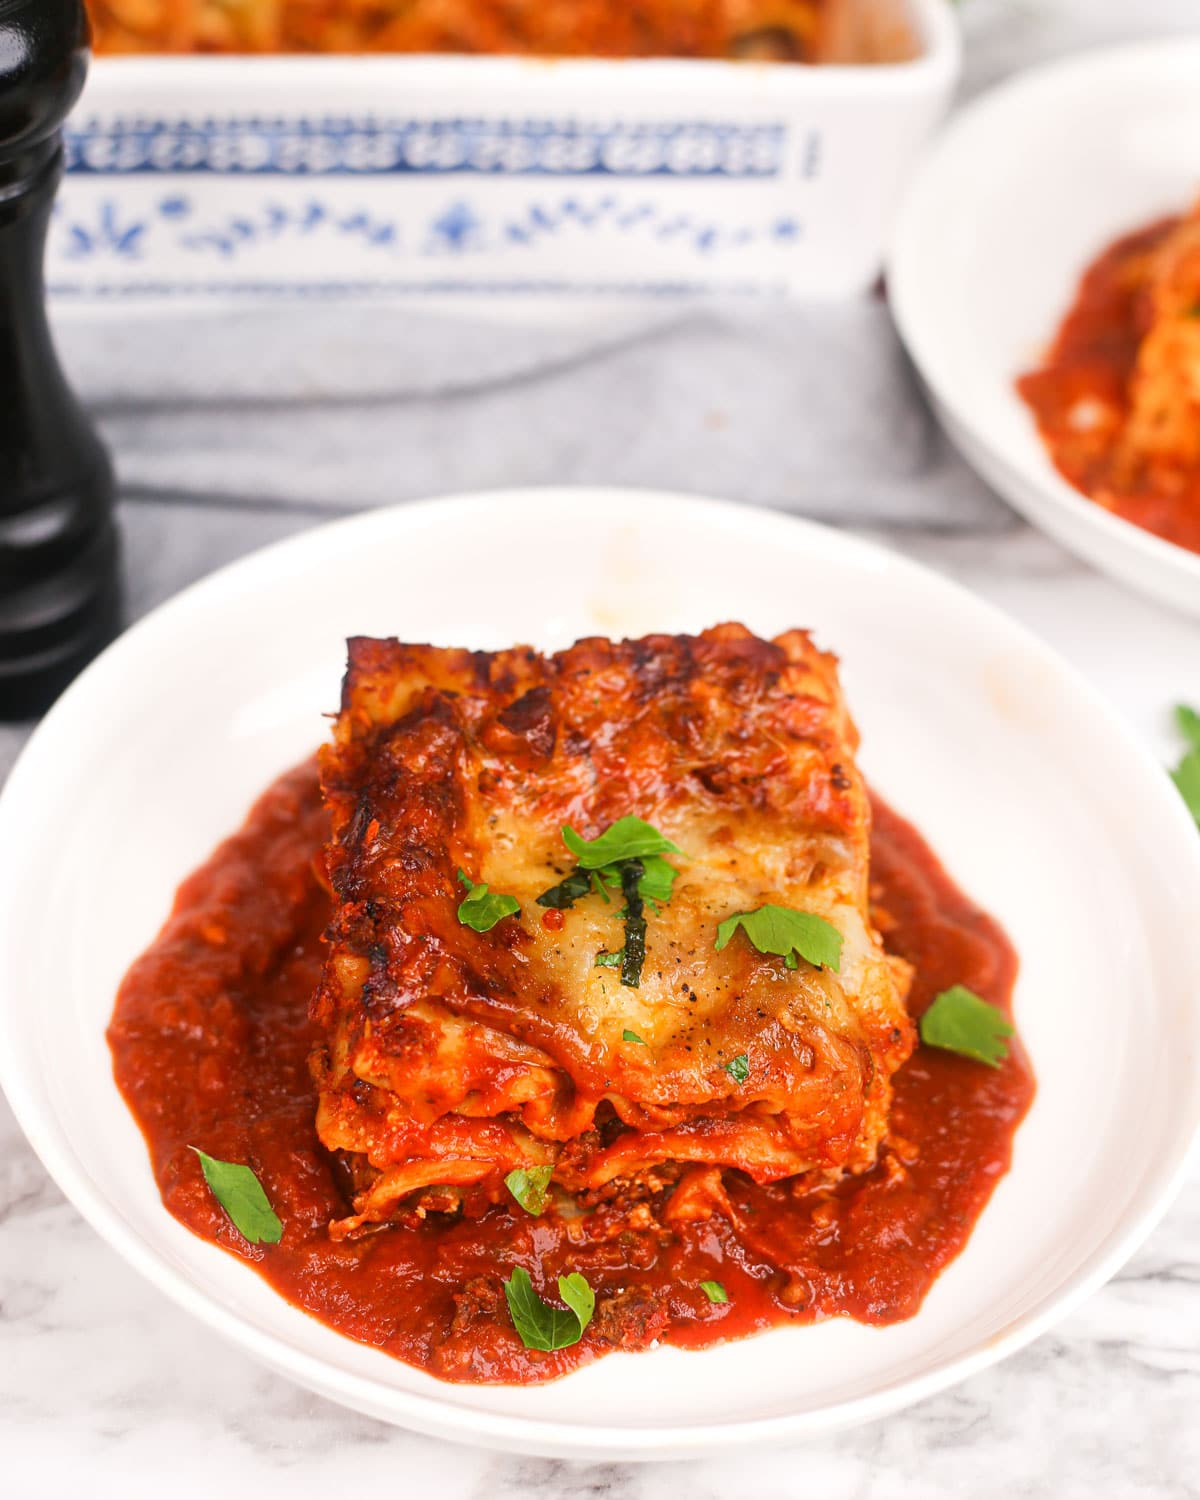 a slice of lasagna on a plate with tomato sauce